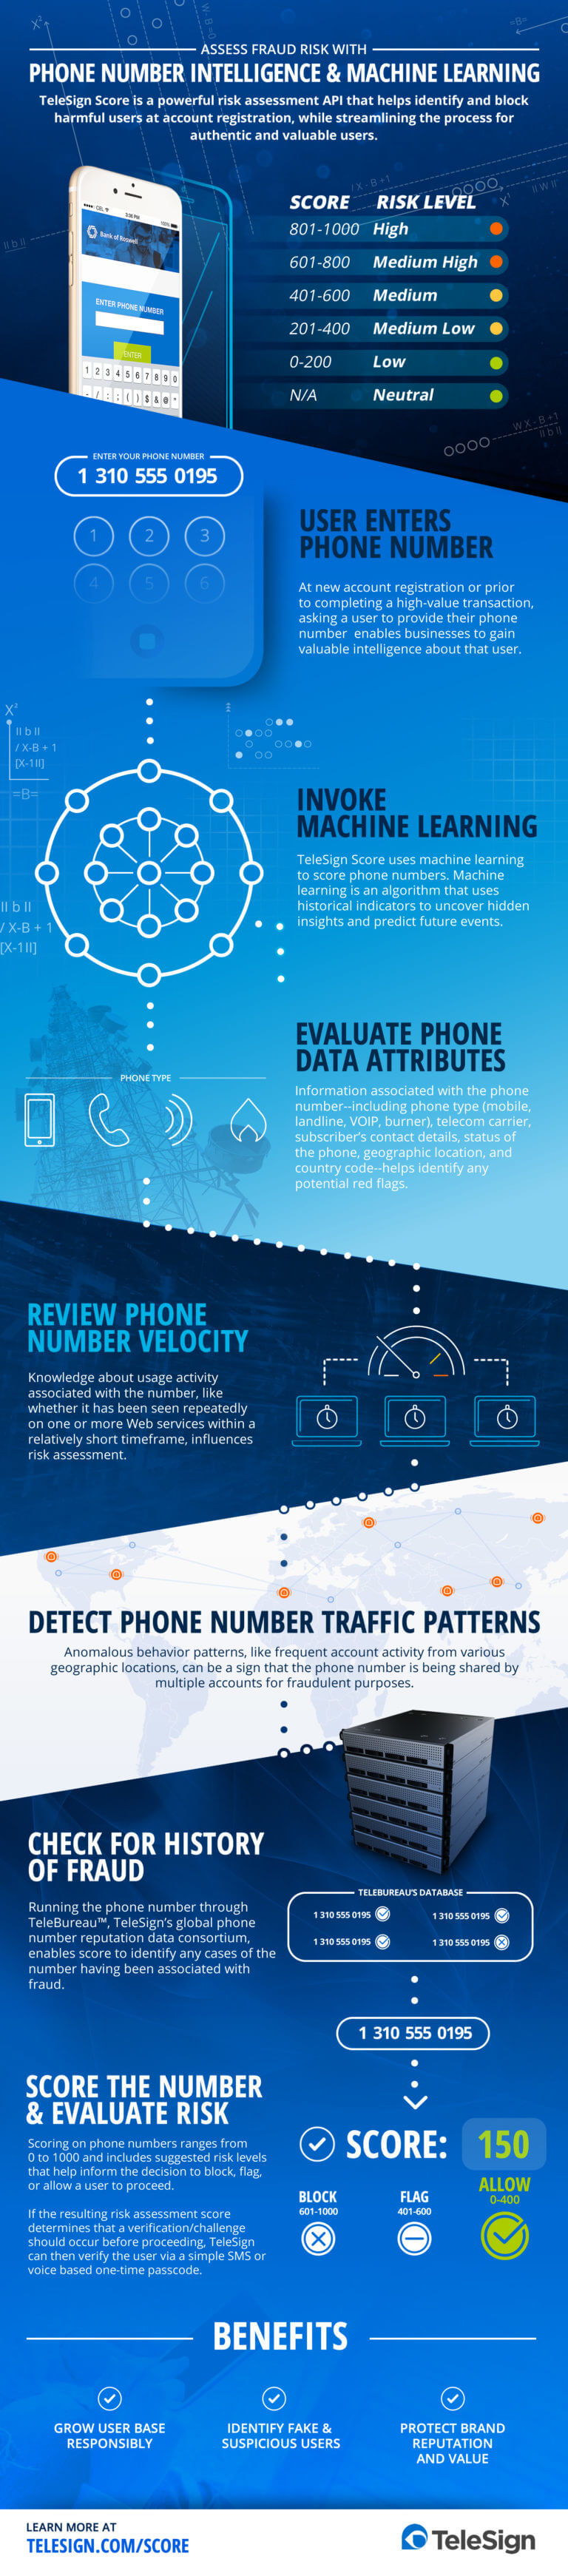 Phone number intelligence and machine learning infographic